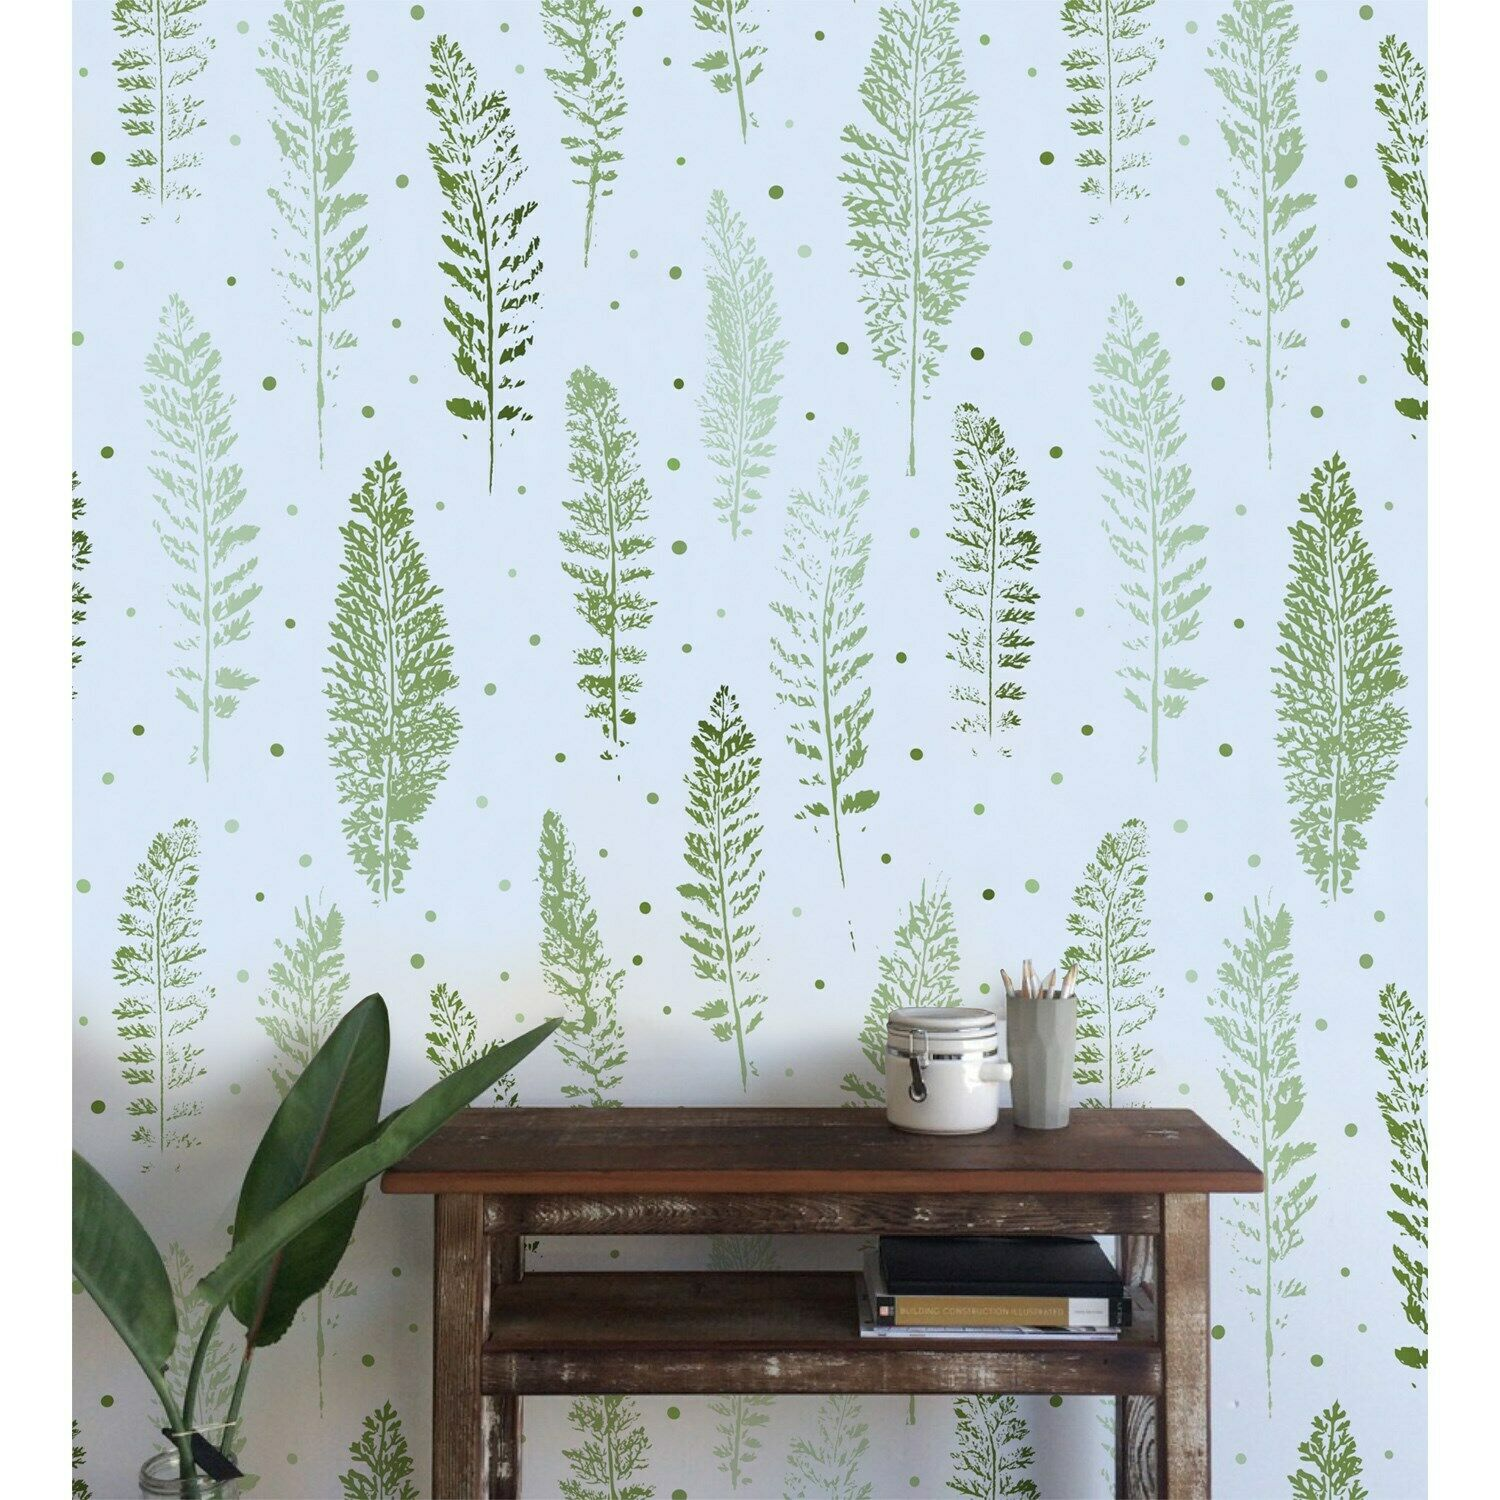 Abstract nature Non-Woven wallpaper WaterFarbe wall mural Leaves Home decor